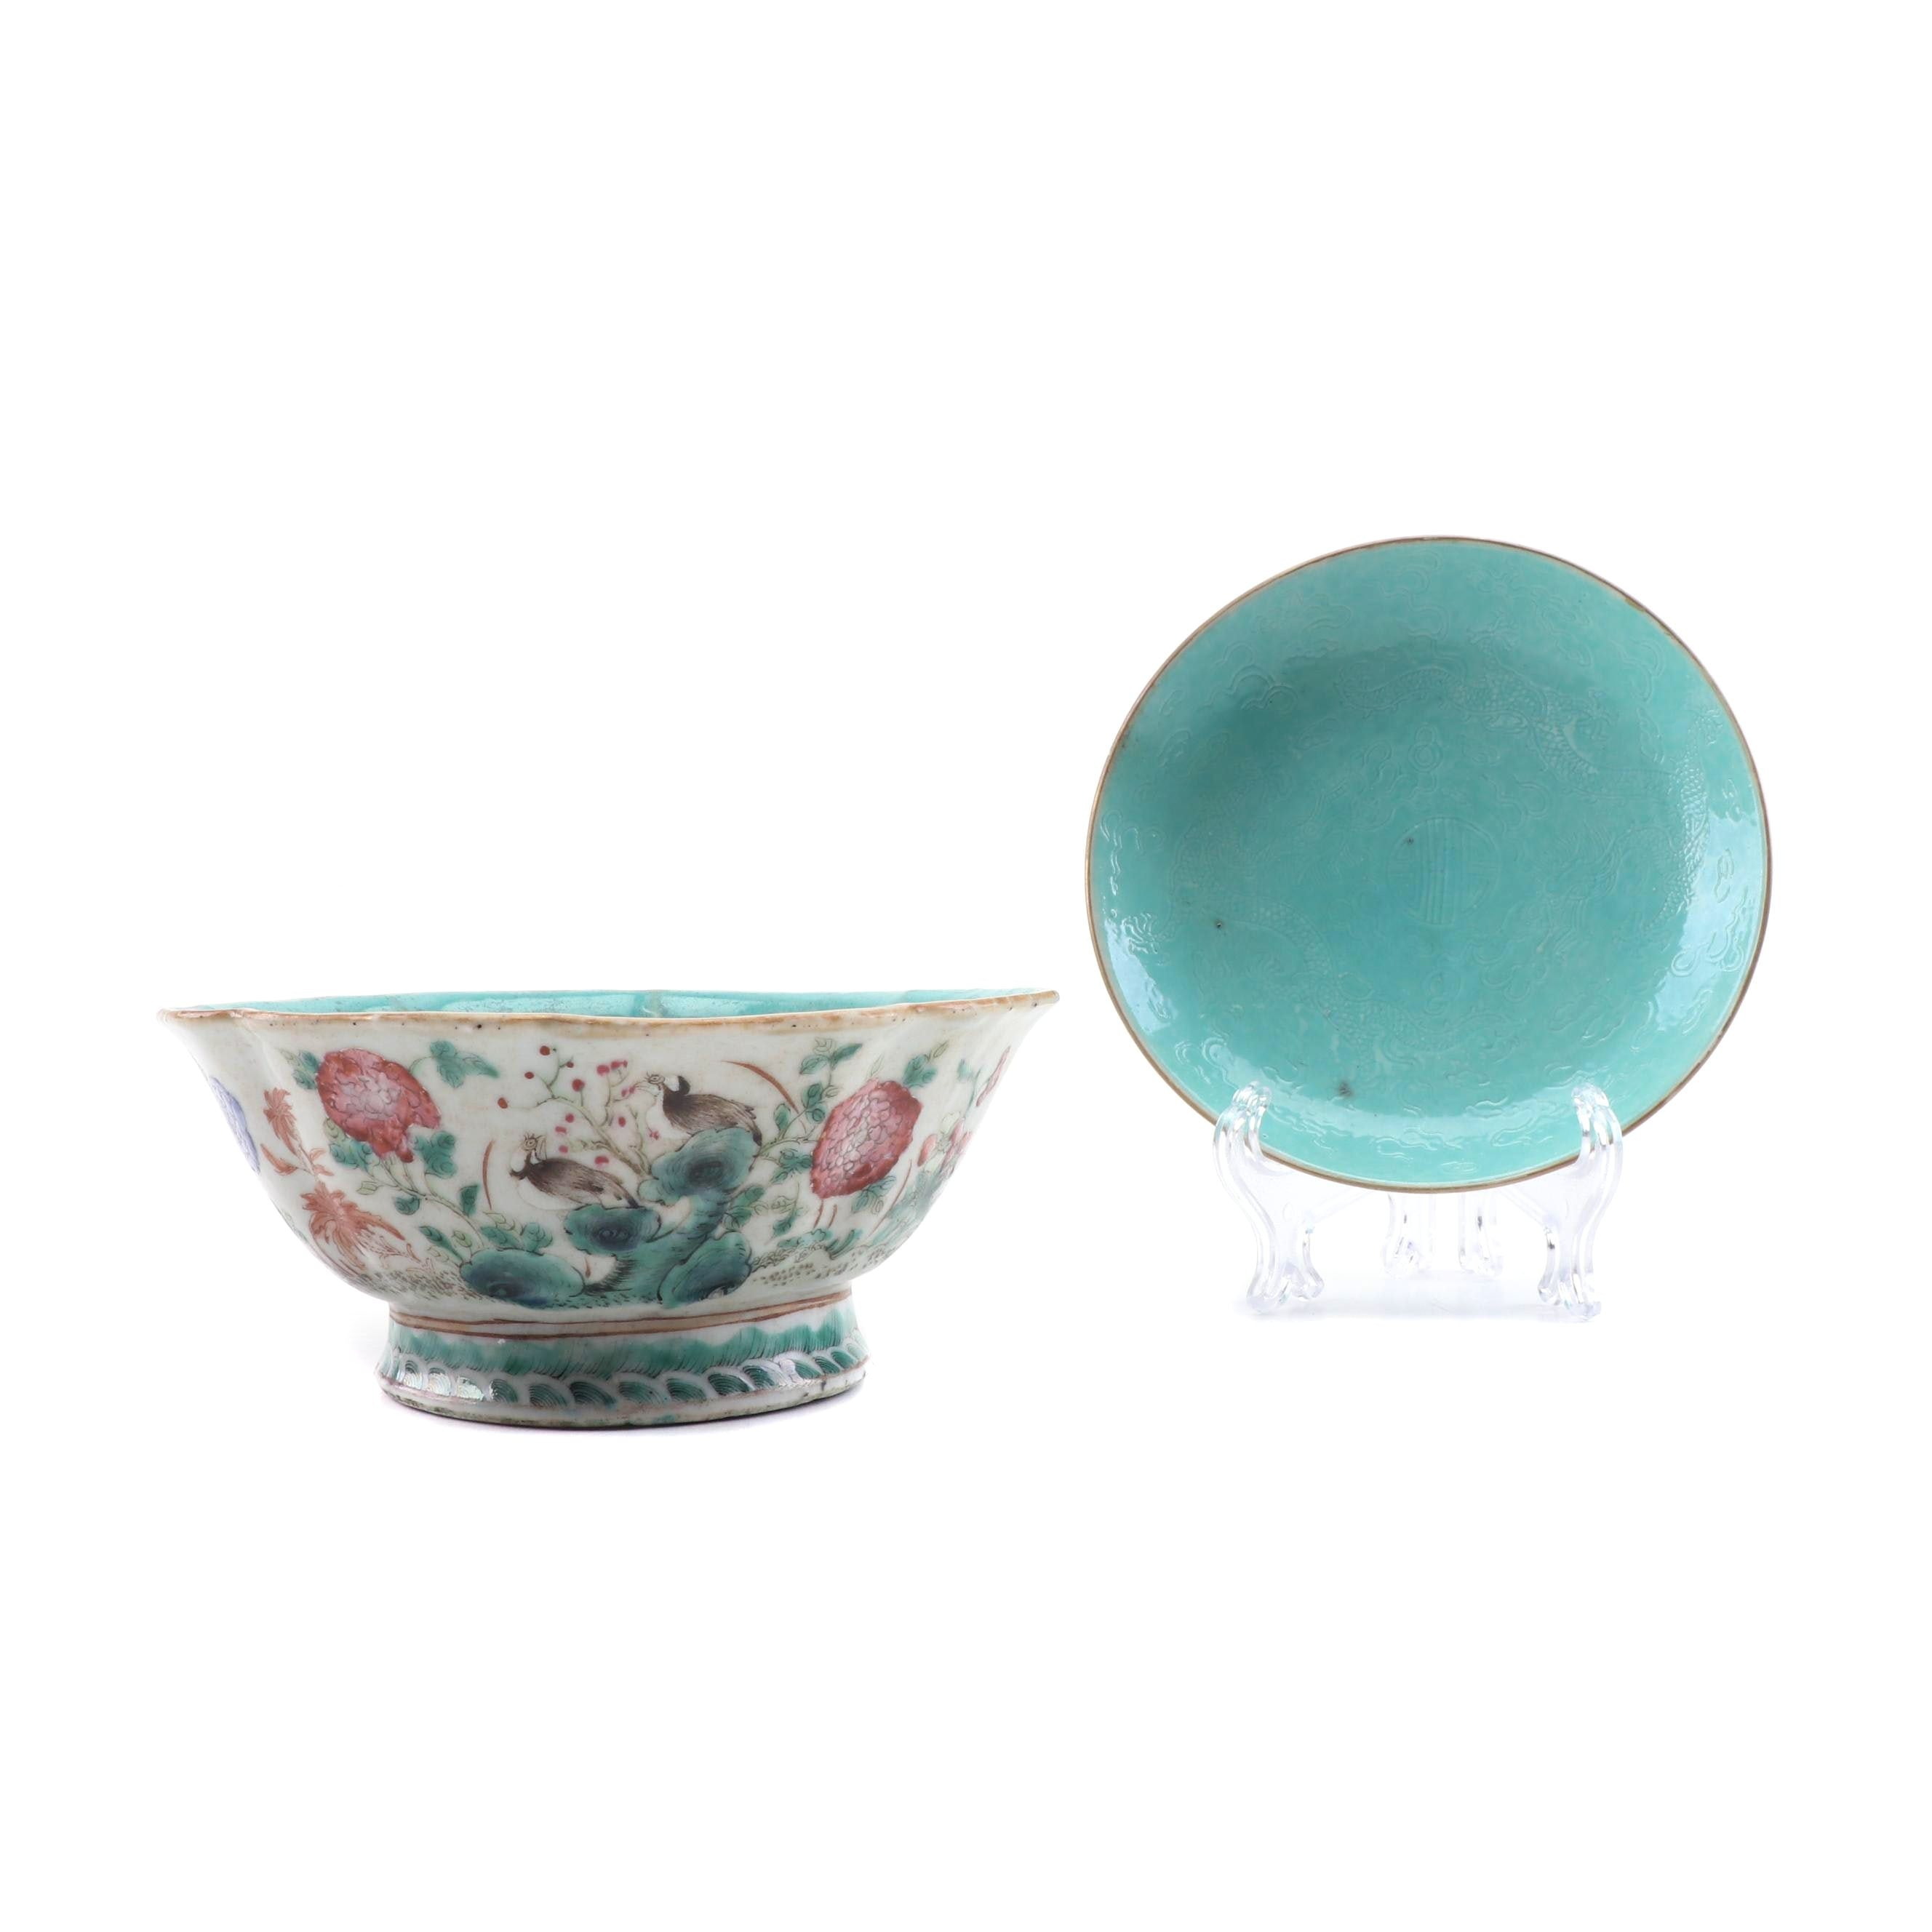 Chinese Polychrome Porcelain Finger Bowl and Dish